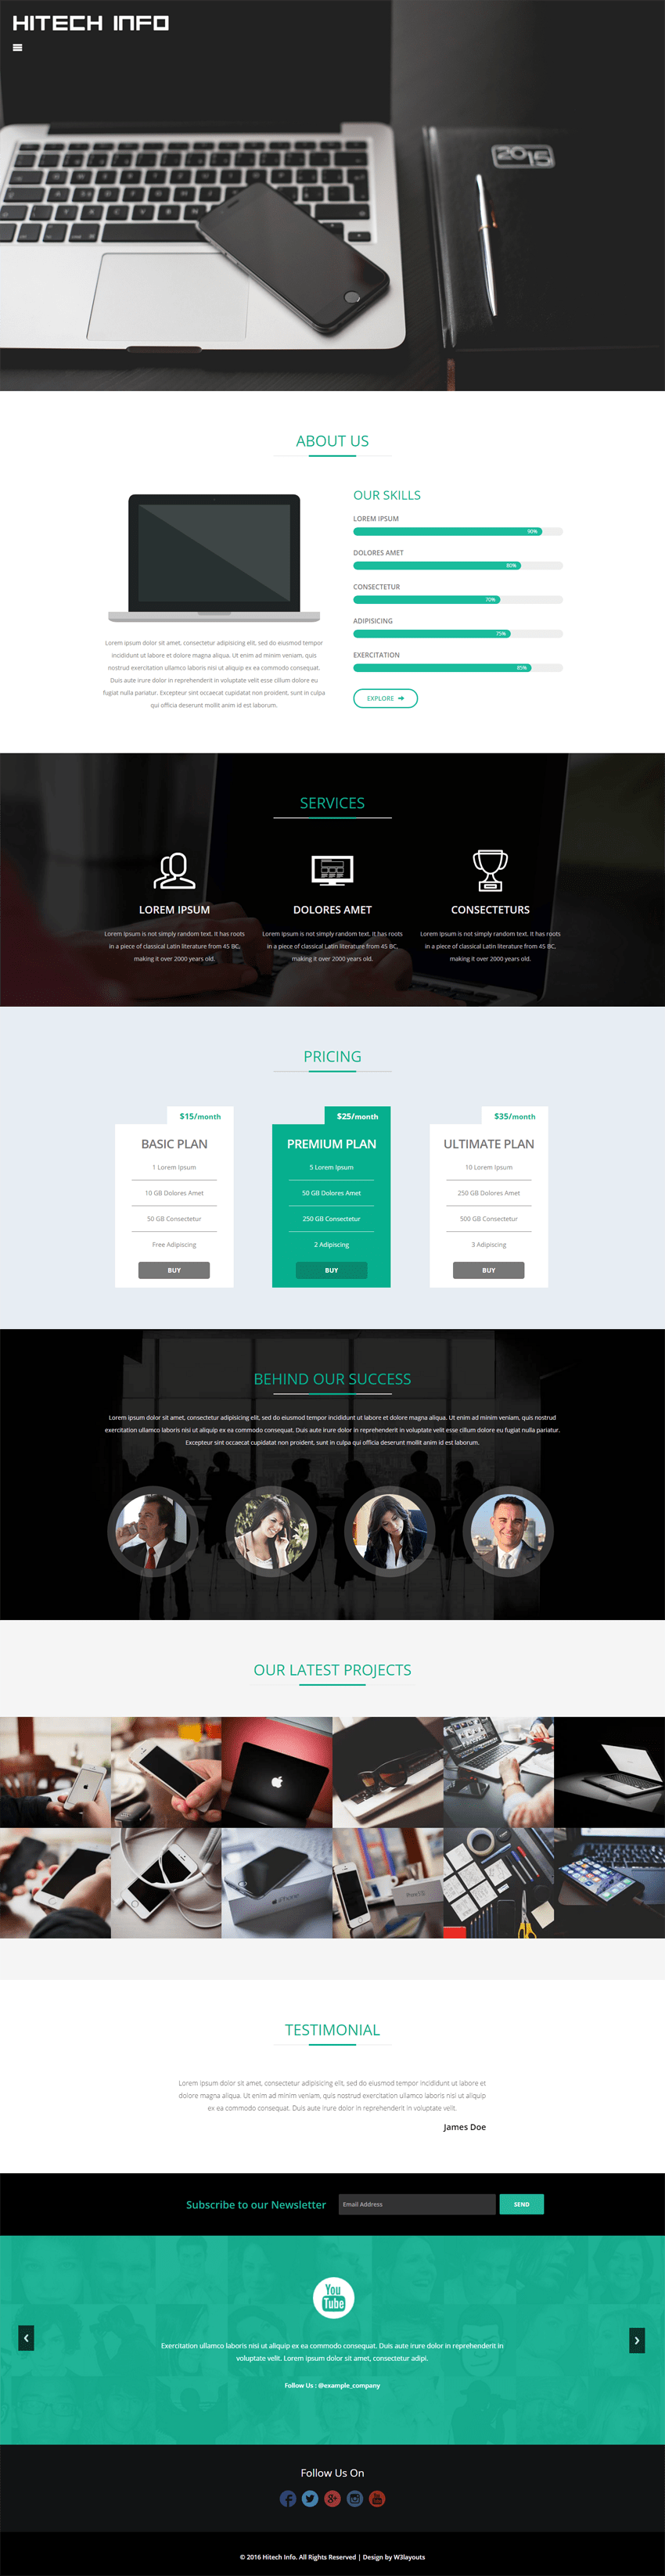 Hitech Info a Corporate Category Flat Bootstrap Responsive